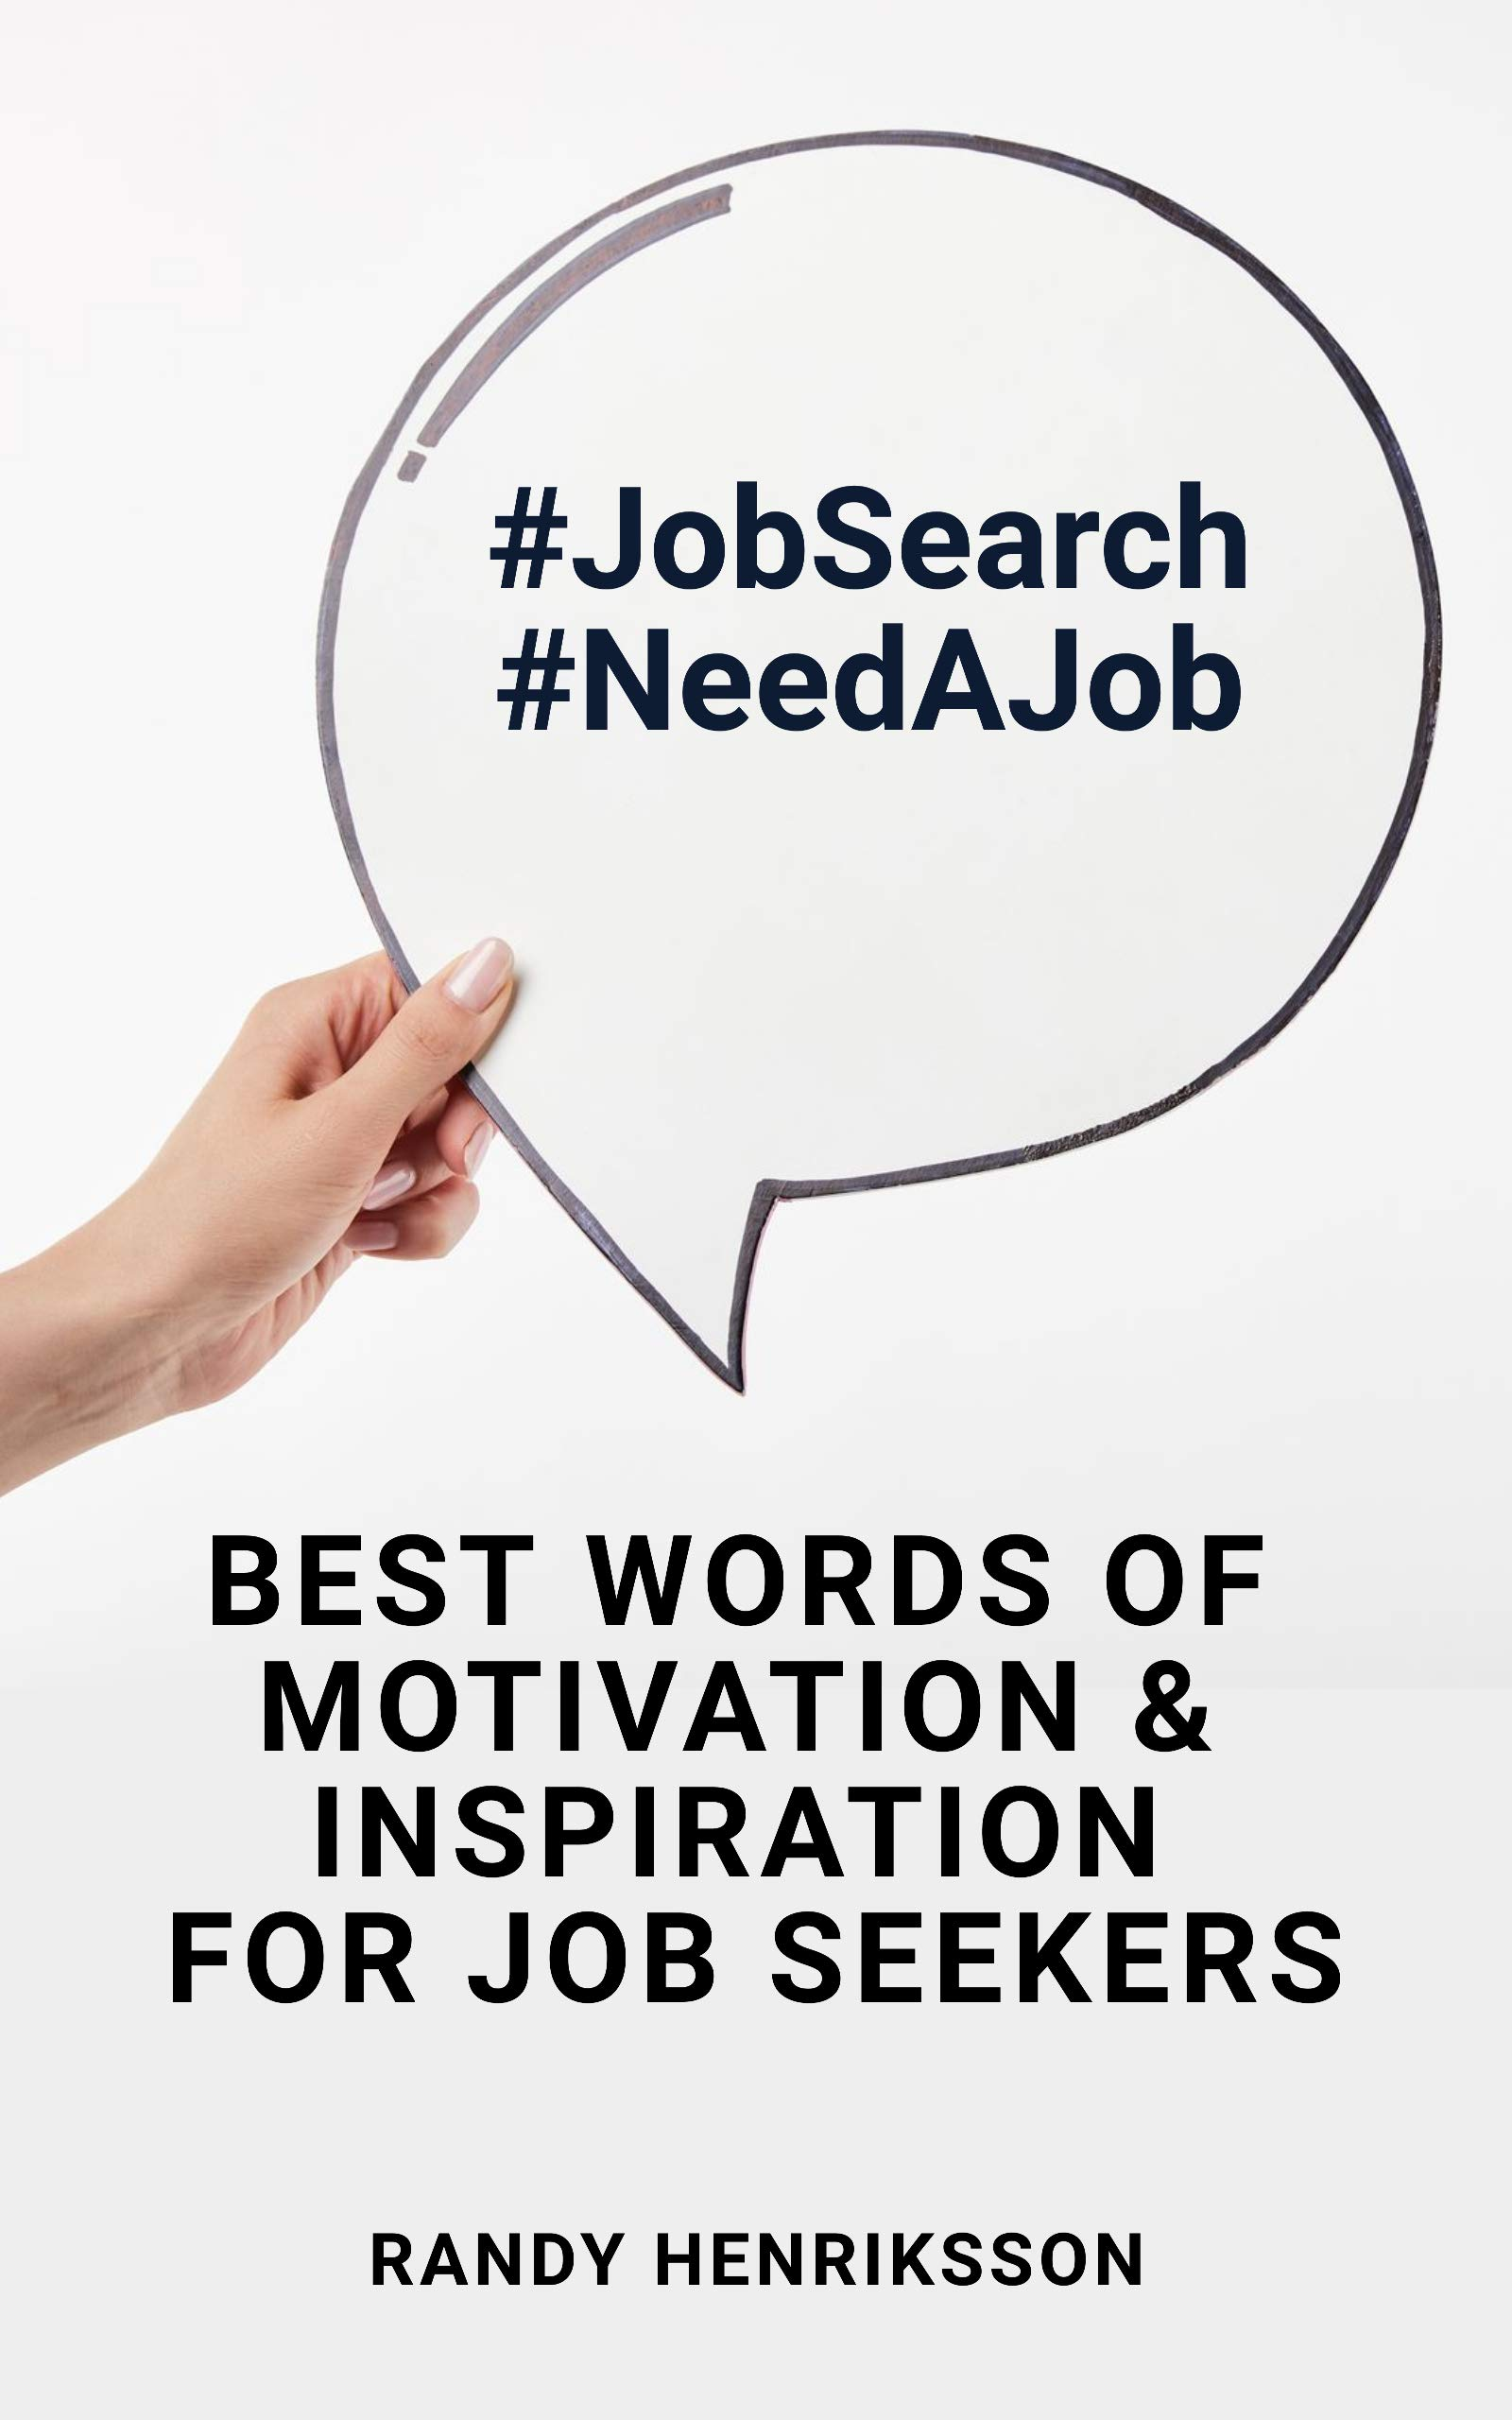 #JobSearch #NeedAJob: Best Words Of Motivation & Inspiration For Job Seekers